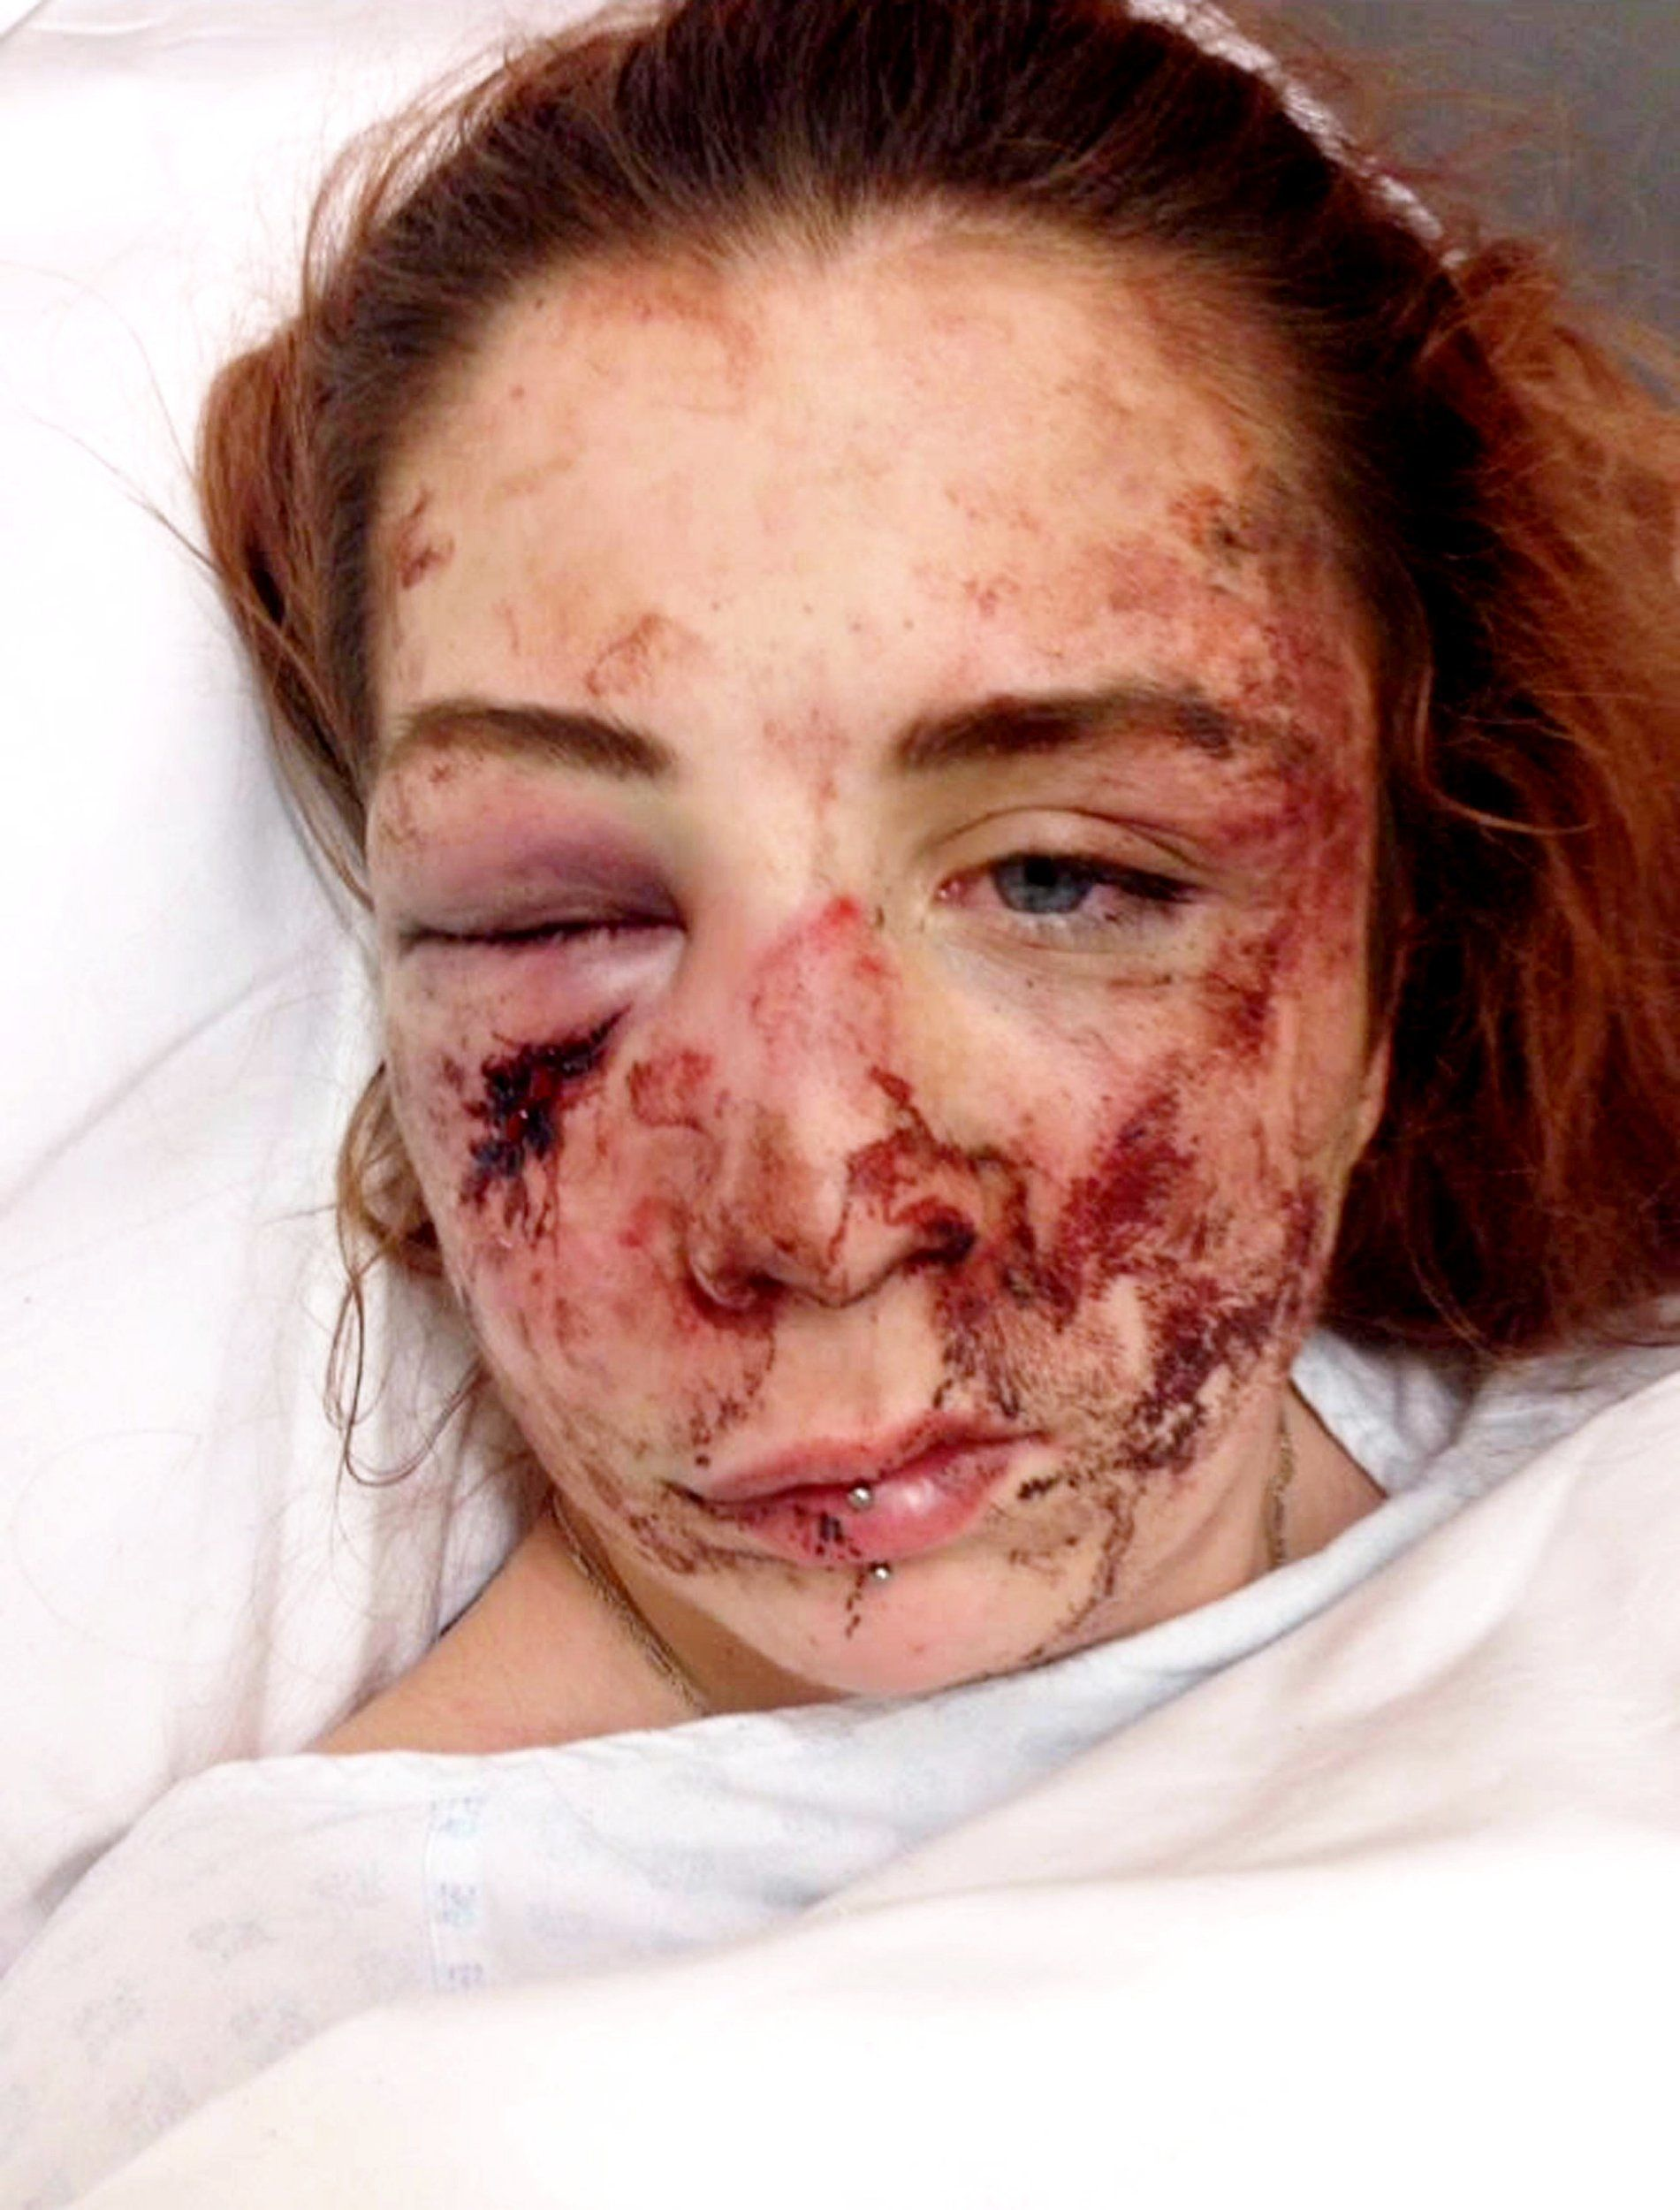 Bully only stopped attack when someone said 'leave her, I think she's dead'